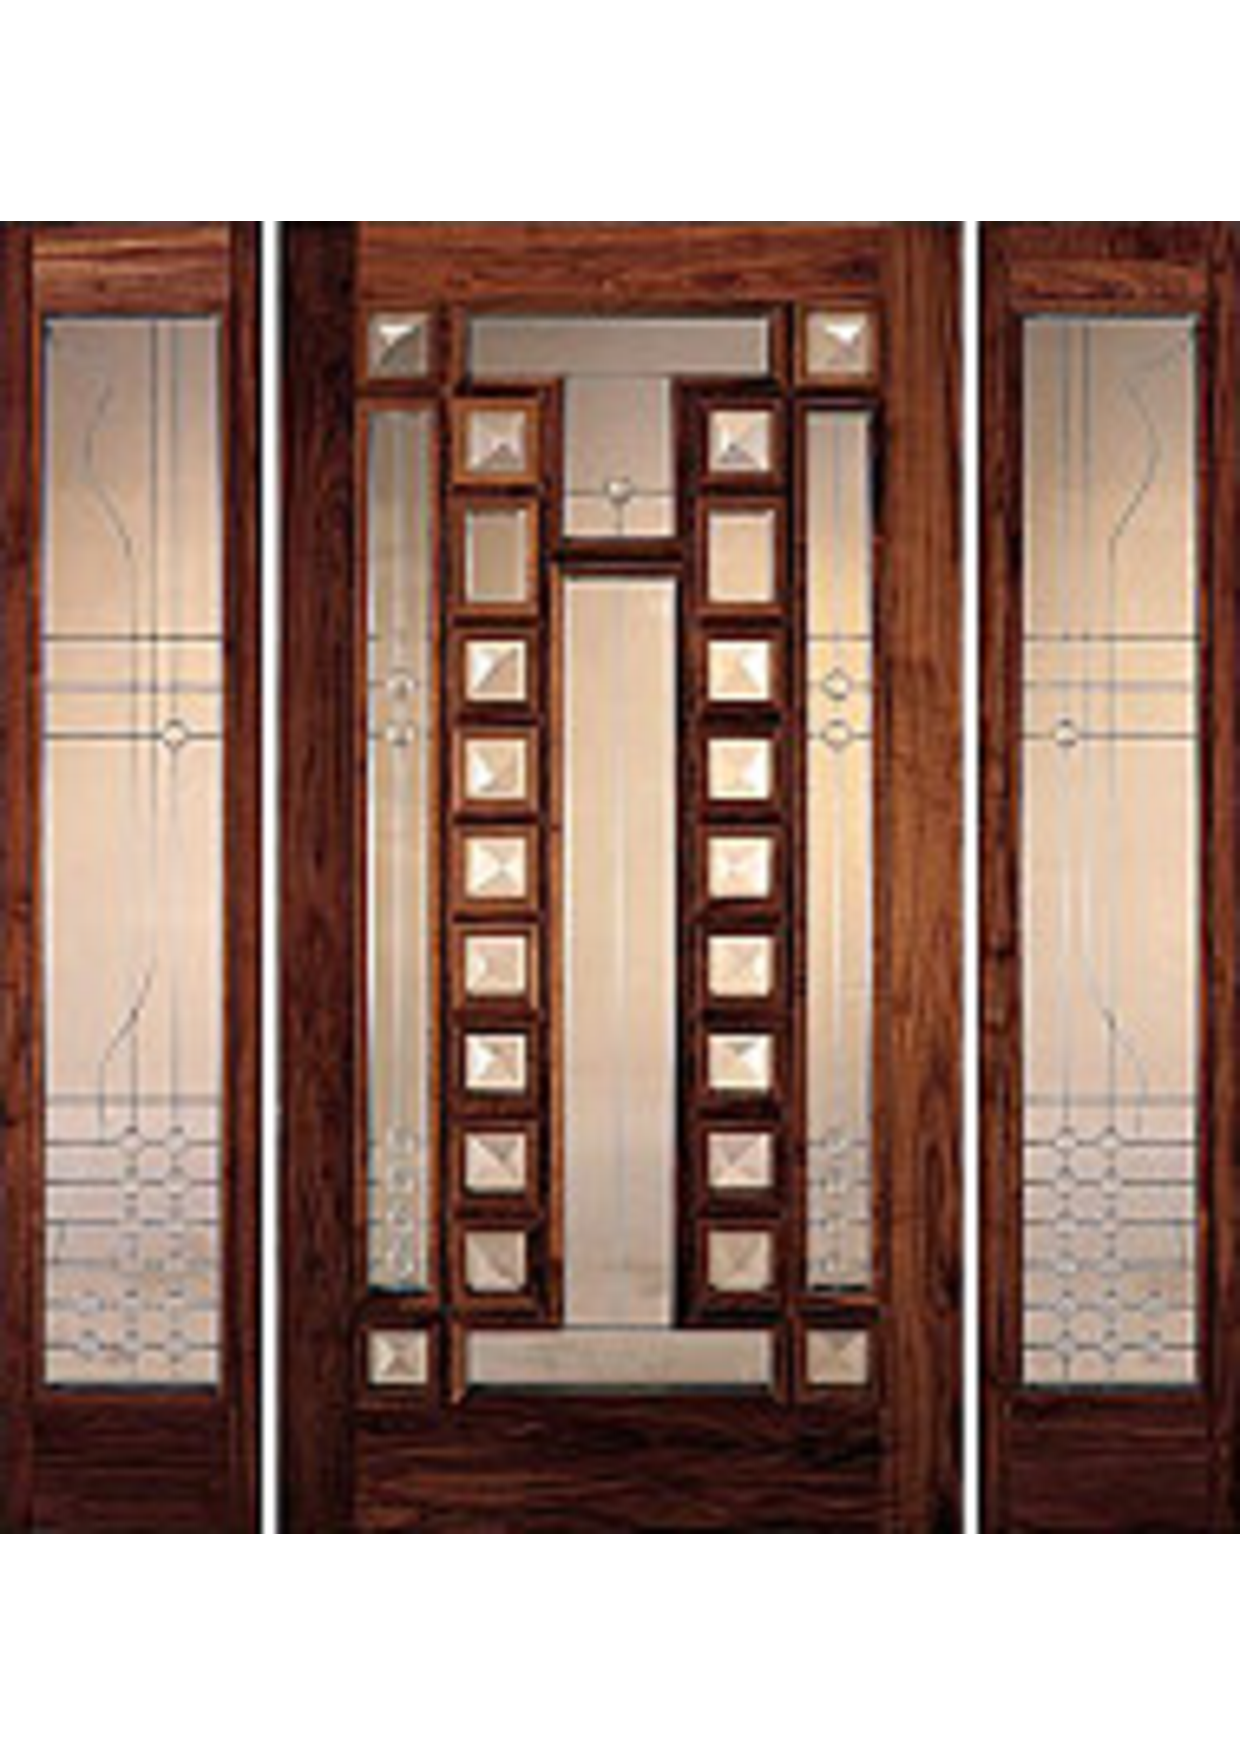 Living room door designs in india nakicphotography for Living room doors